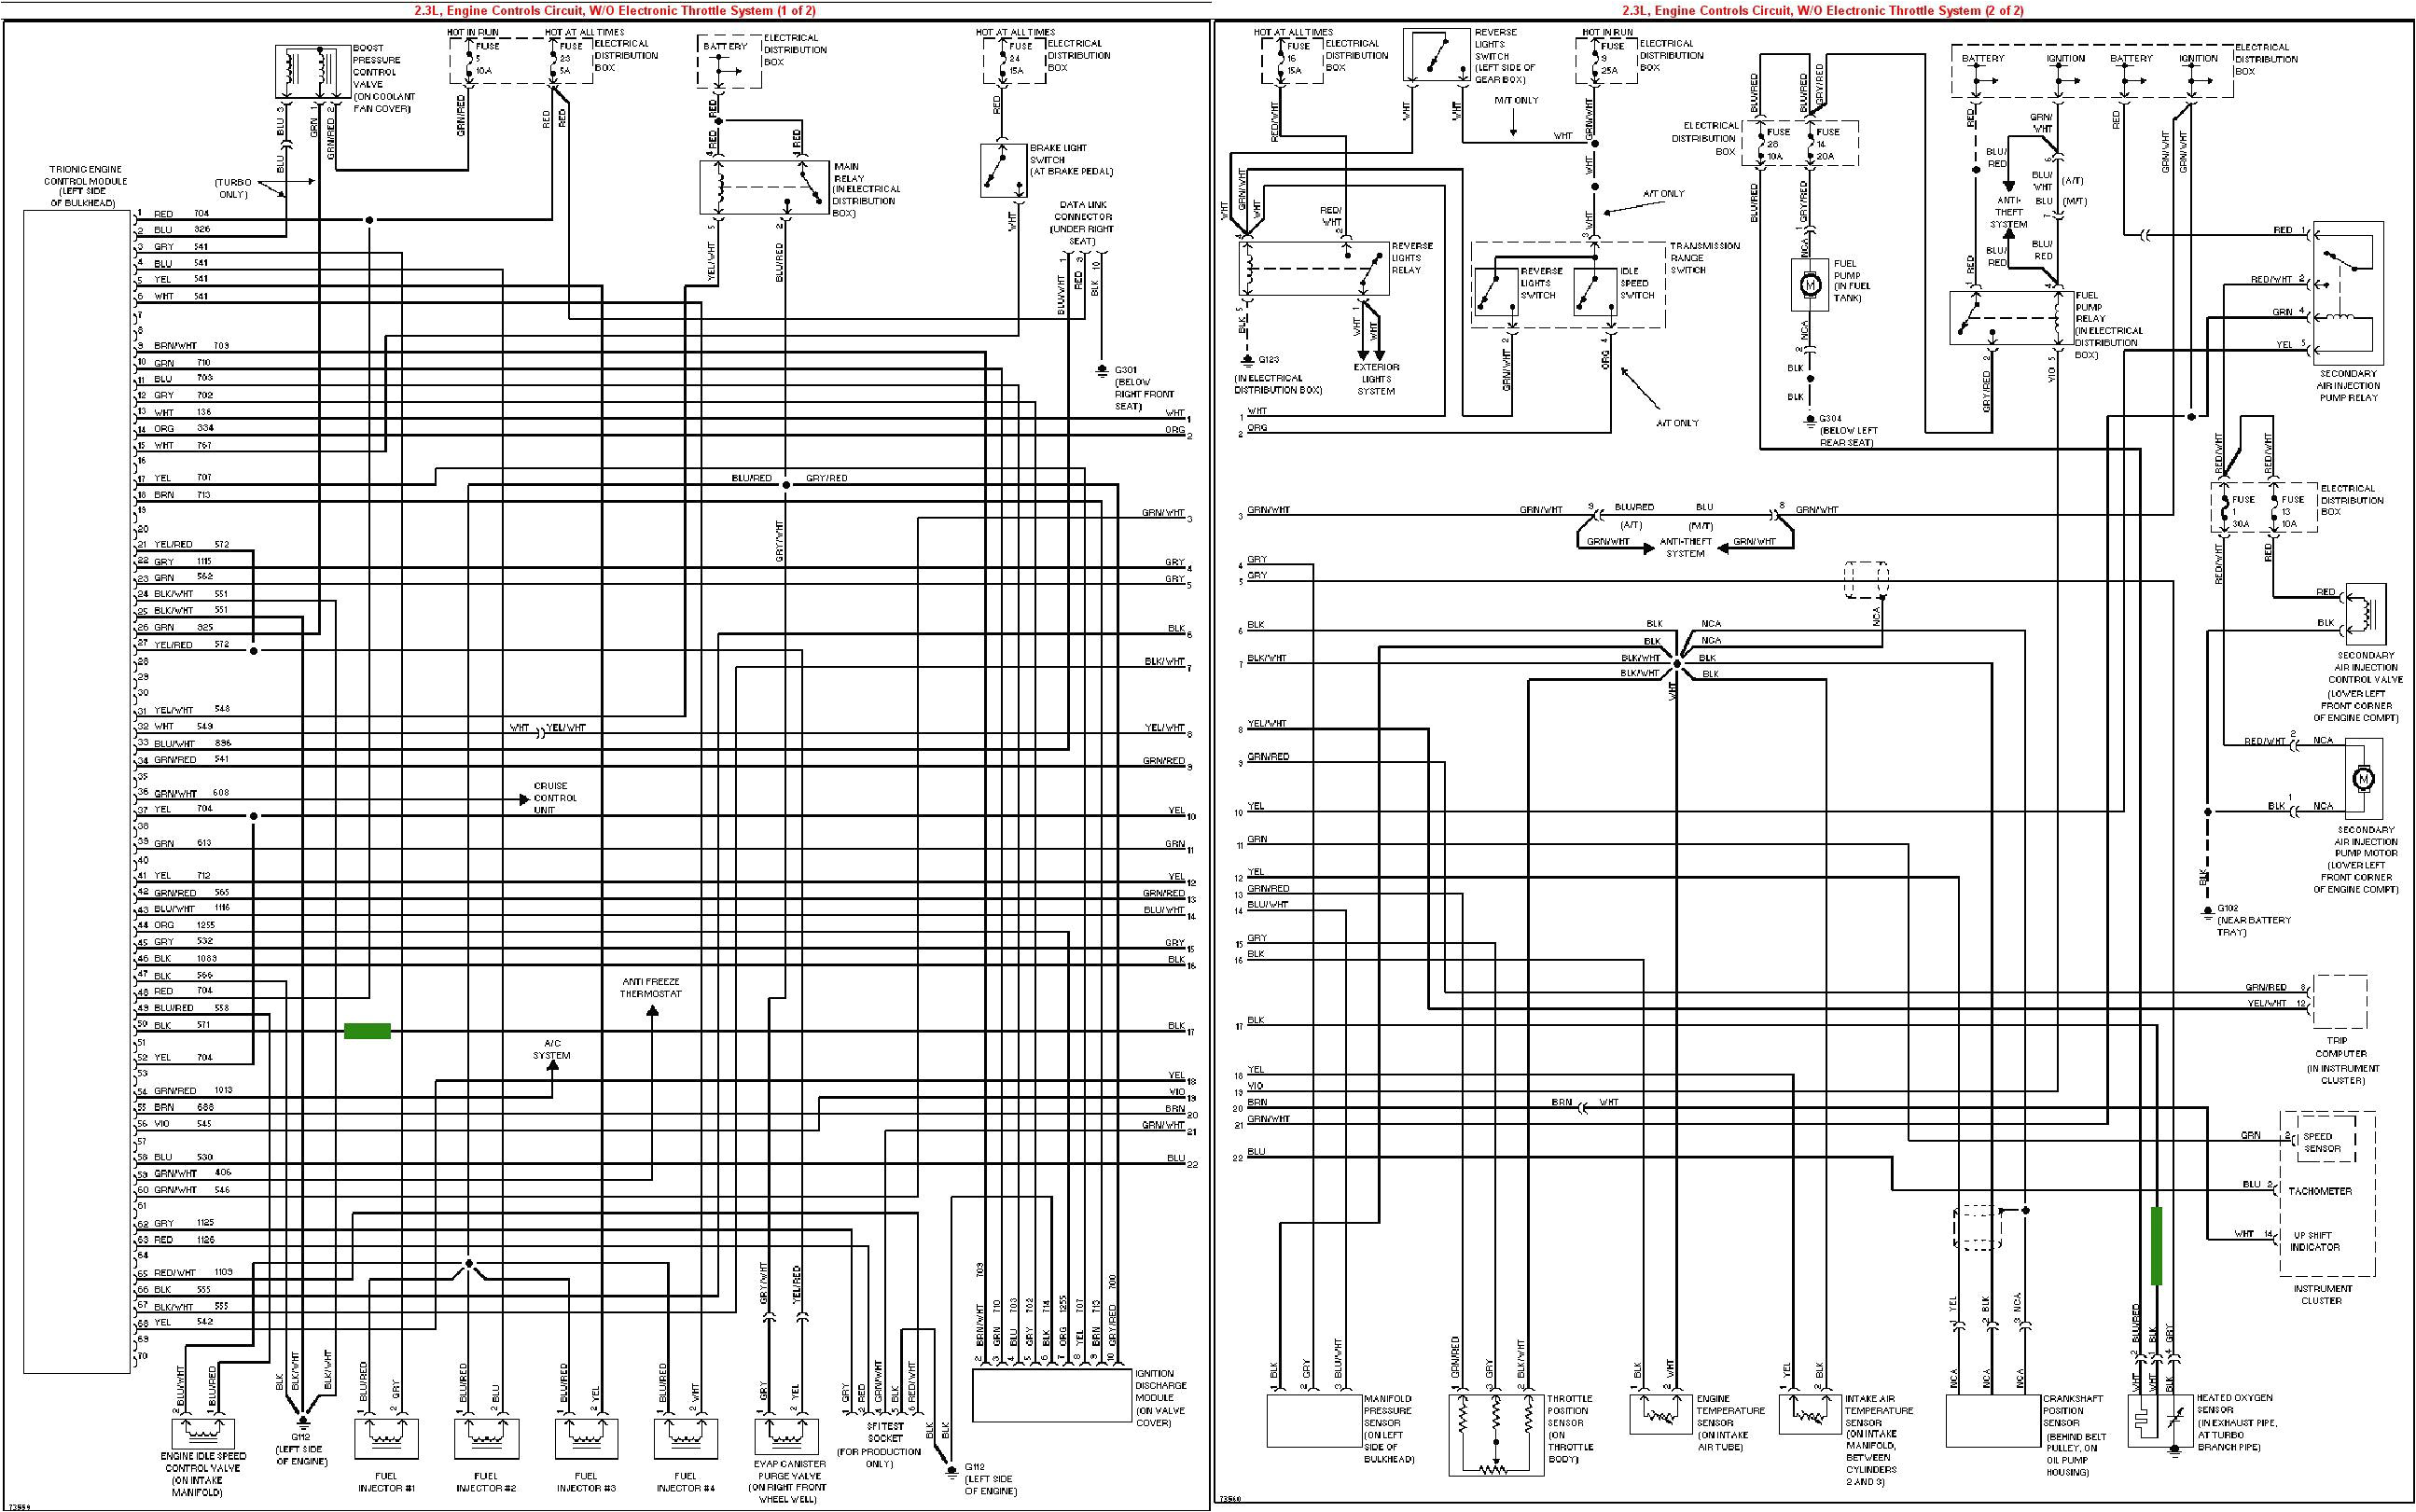 saab 93 wiring diagram fine 9 3 in b2network co beauteous 5 jpg